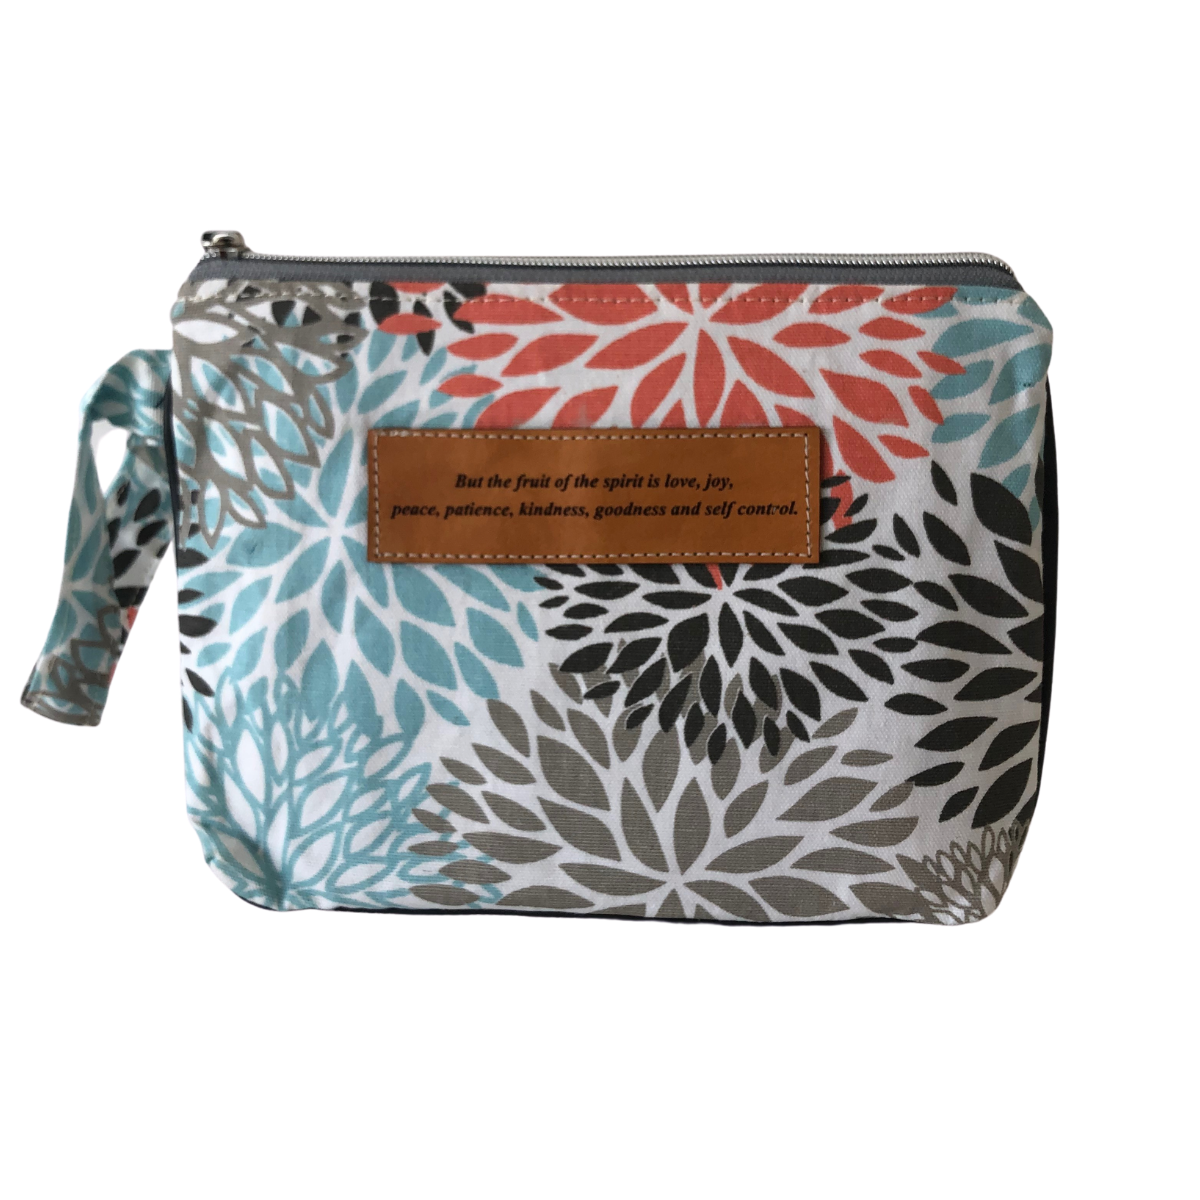 Leather Wristlet Clutch - Fruit of the Spirit